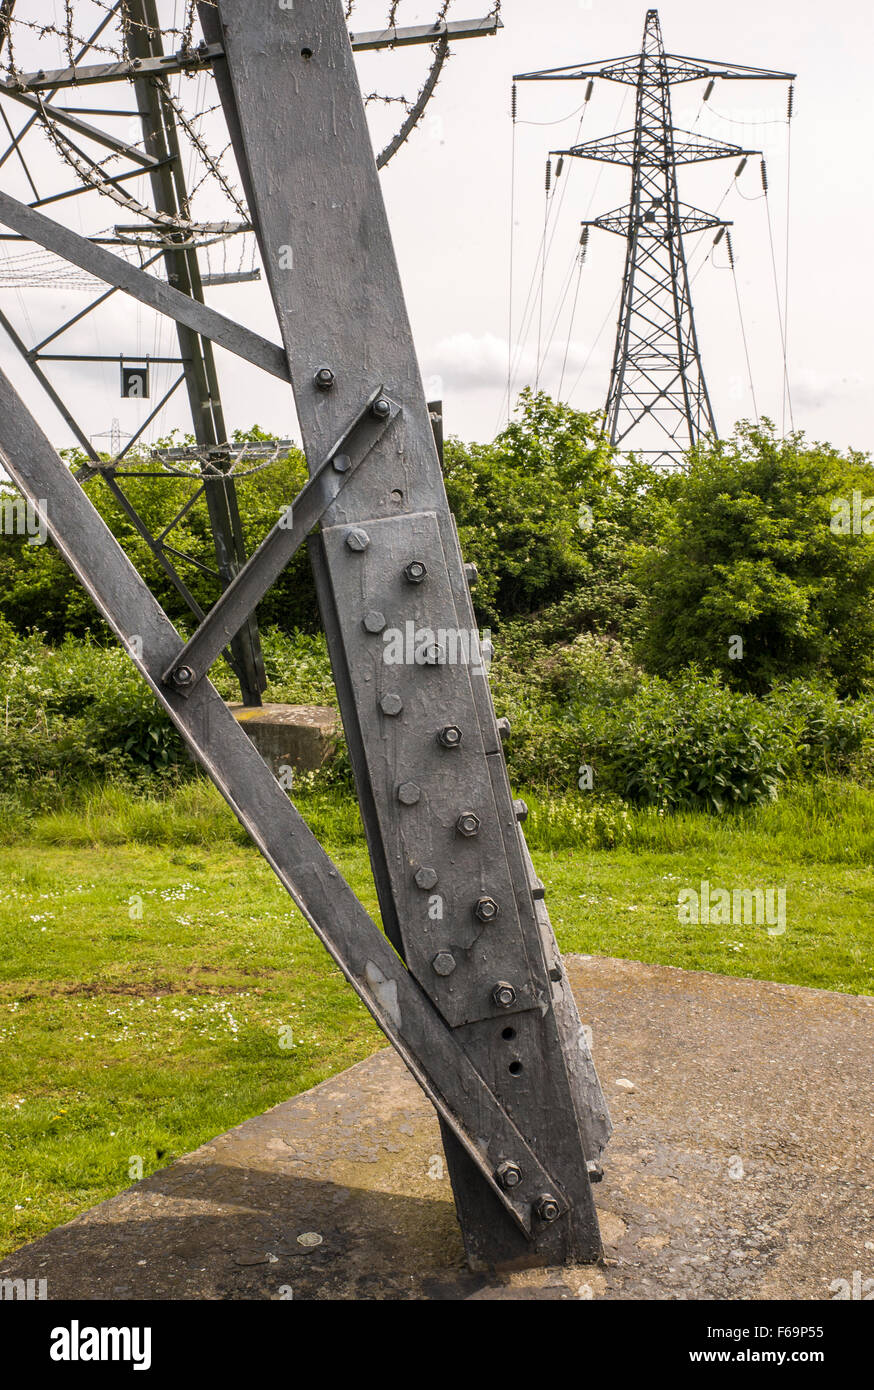 Electricity pylons of the National Grid carrying overhead power cables - Stock Image